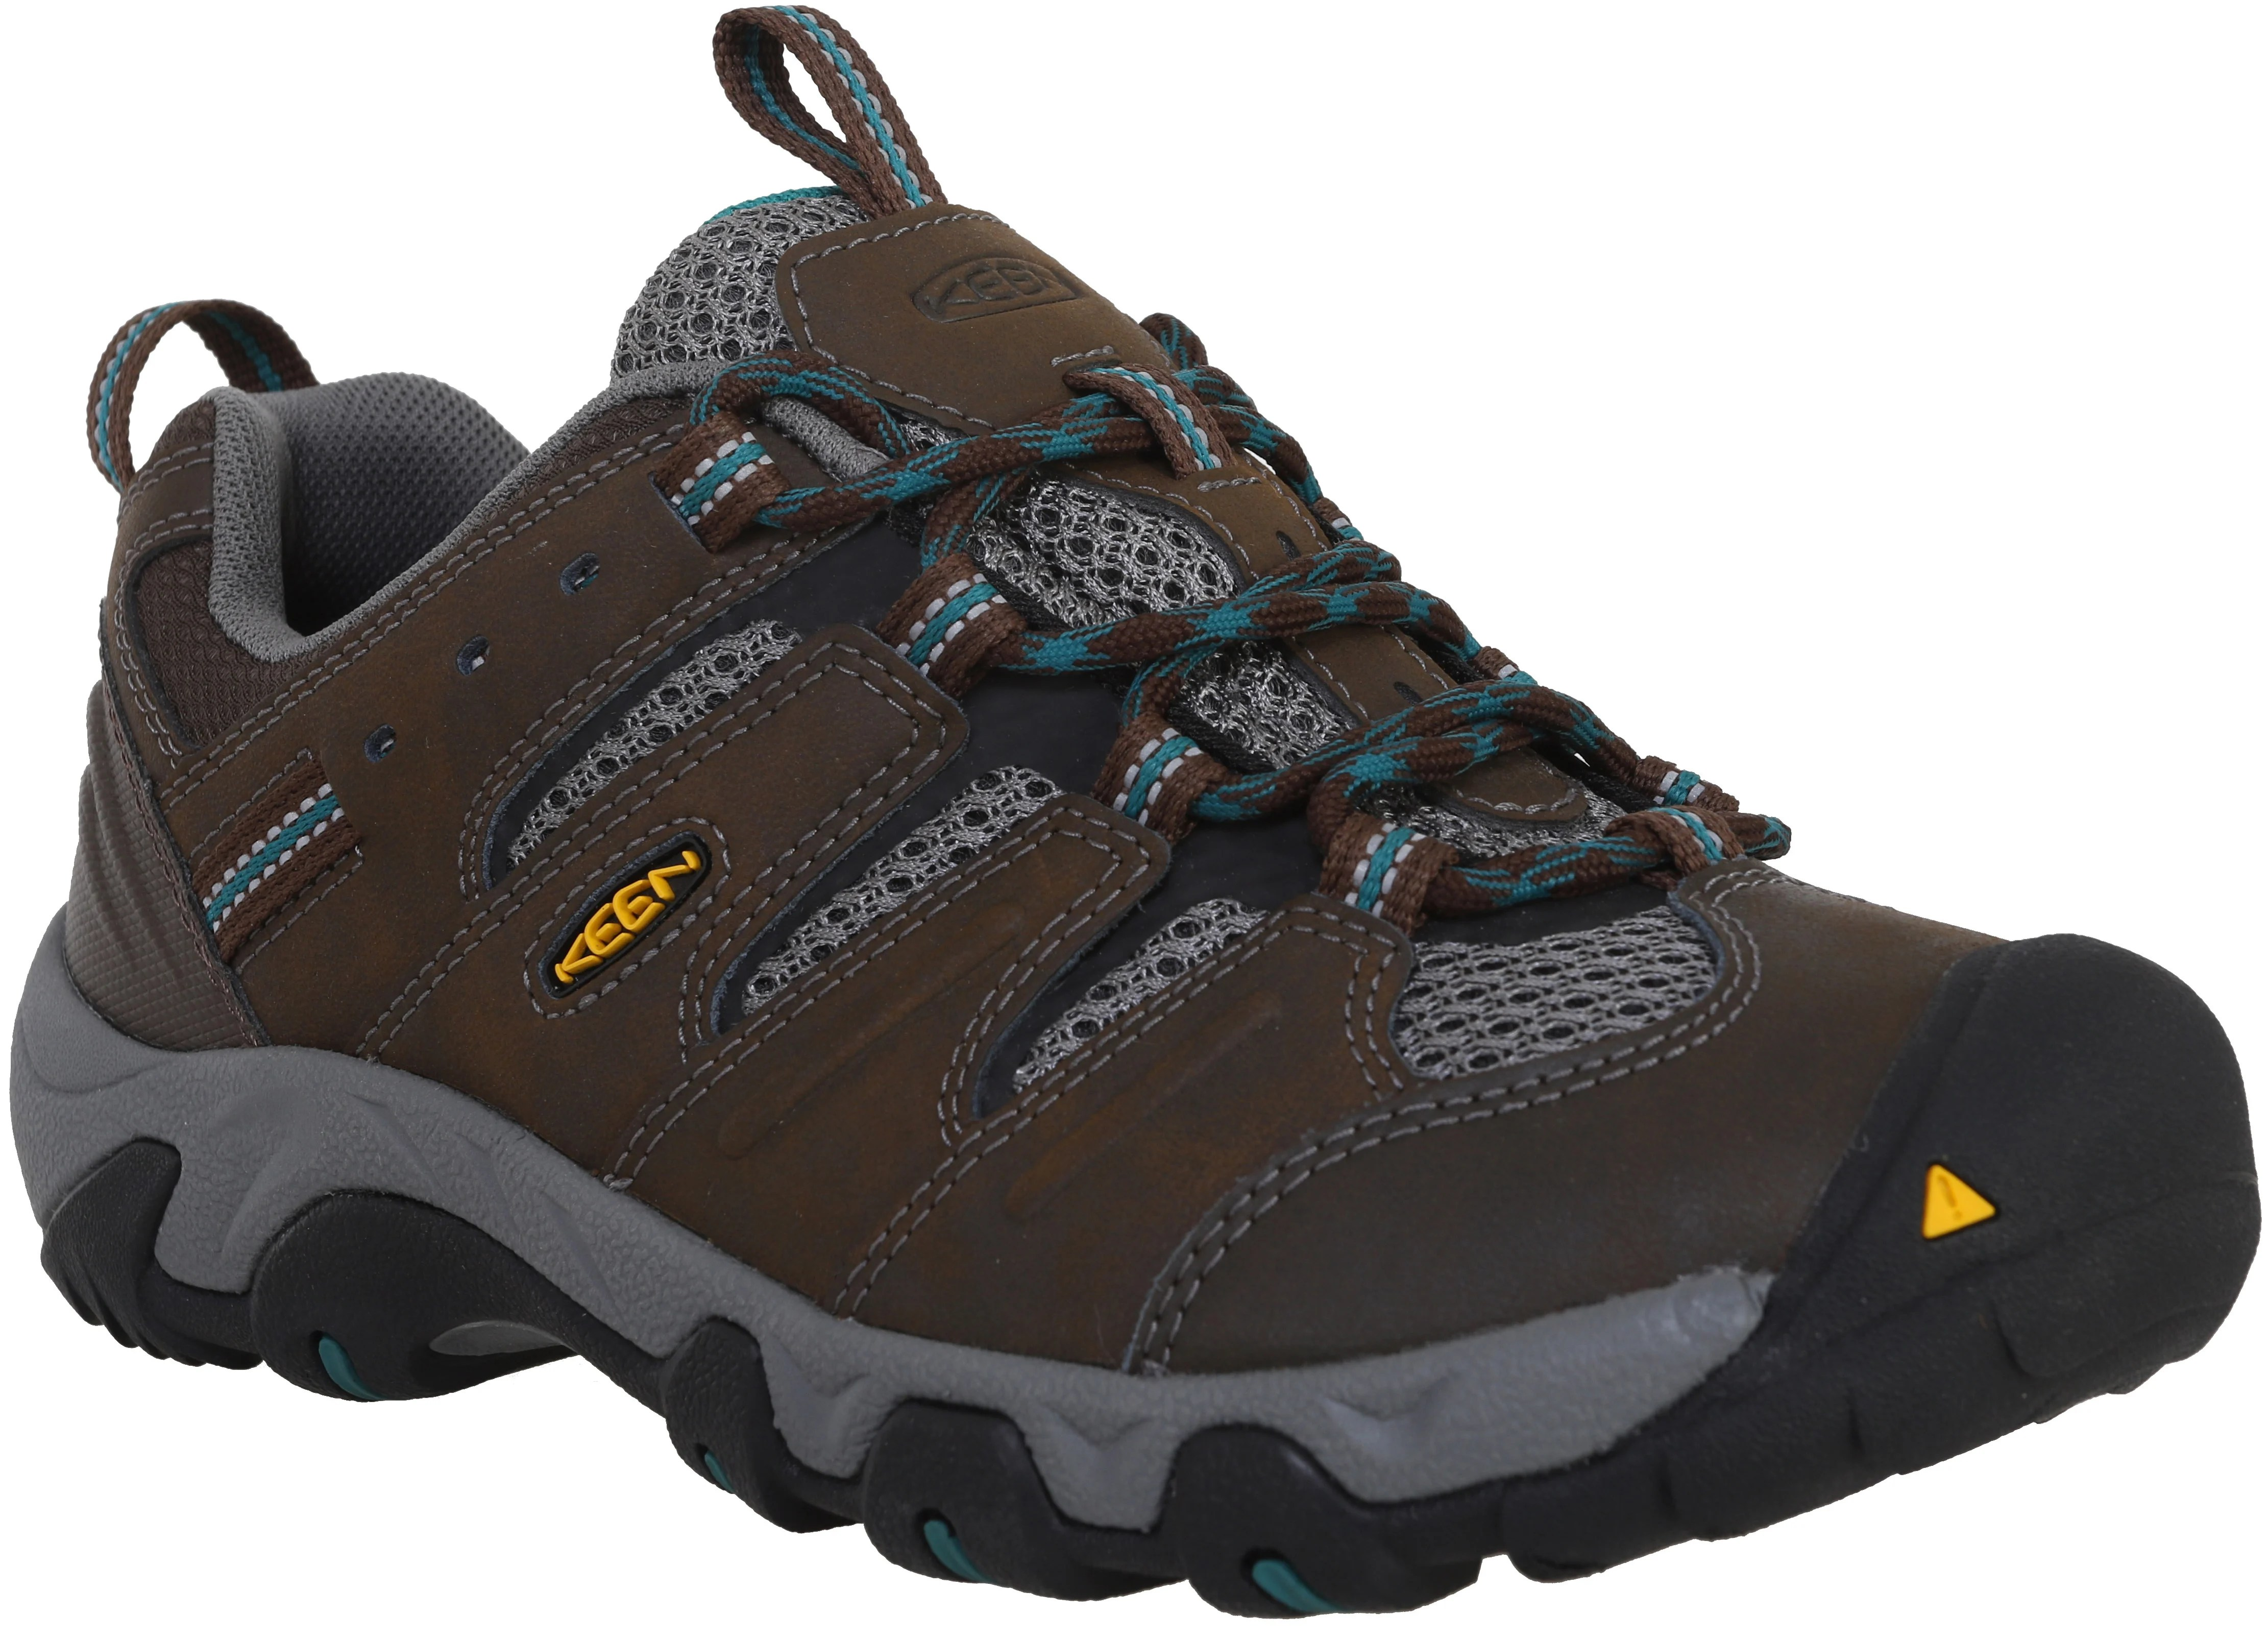 Keen Shoes Sizing